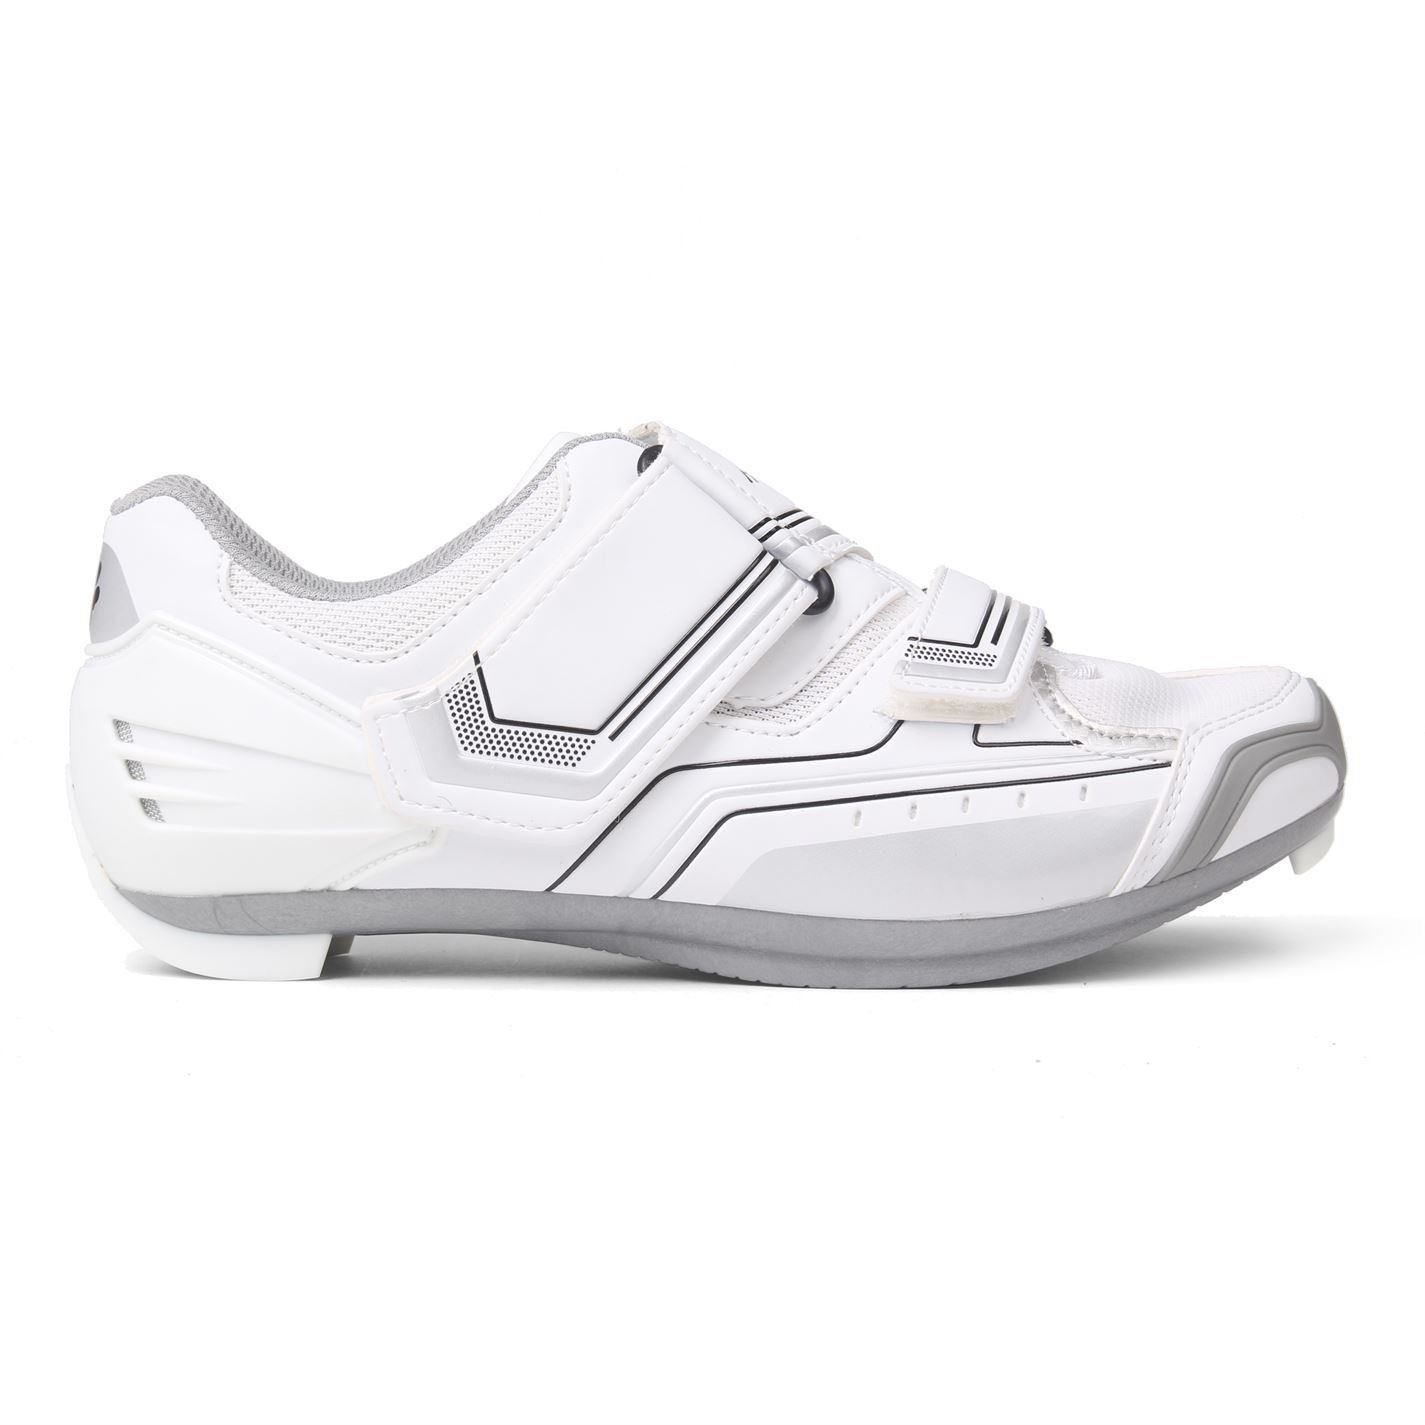 Muddyfox Womens RBS100 Ladies Cycling Shoes Dual Touch And Close Fasteners White/Silver 6.5 (40)